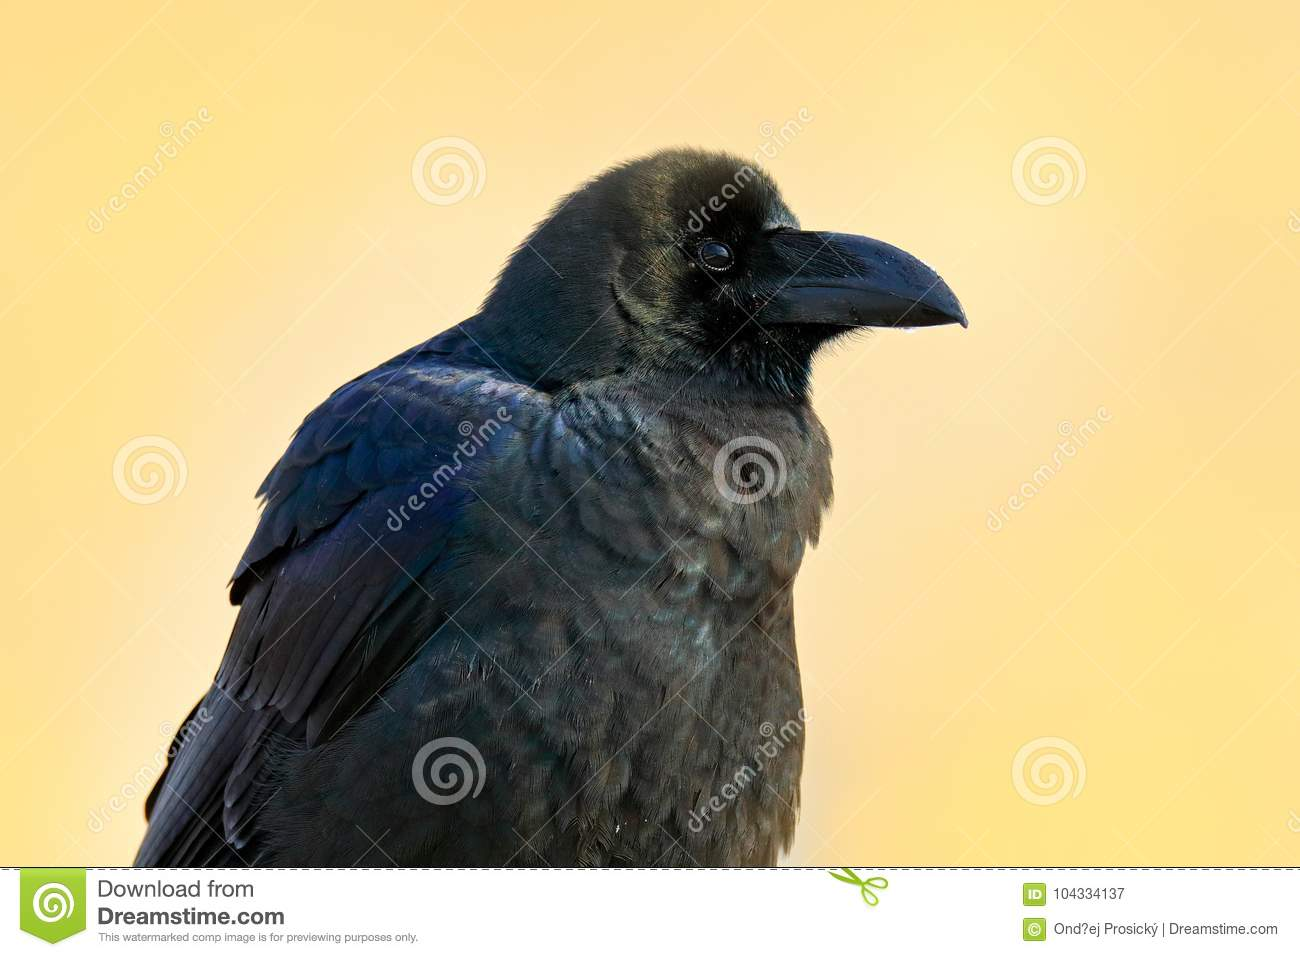 Raven in the green grass. Feeding scene from nature. Black bird from Germany. Bird with food. Meadow with raven. Wildlife scene wi